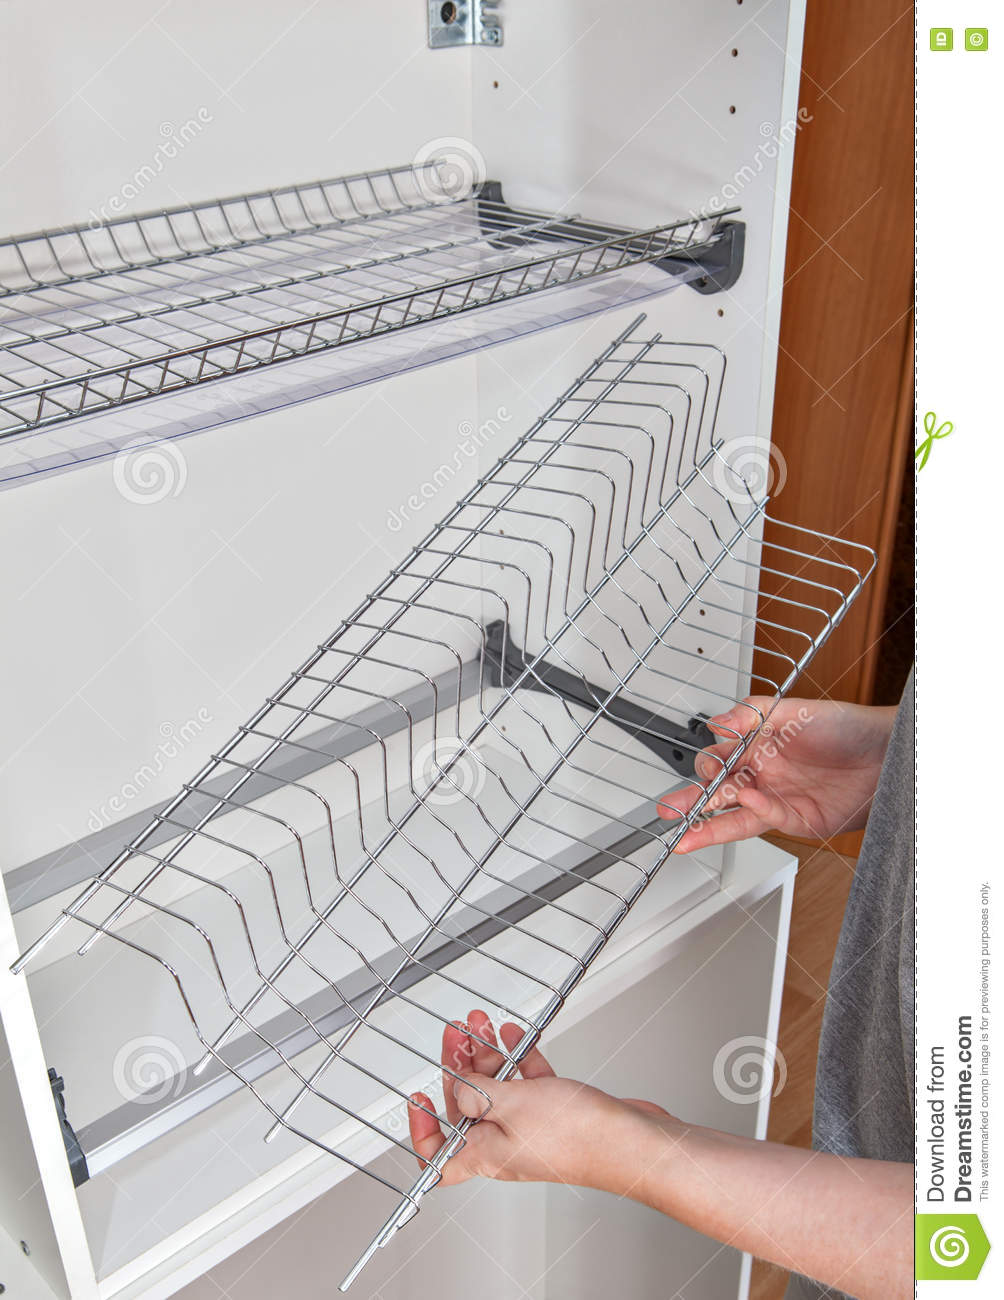 hight resolution of install wall mounted shelf under kitchen cabinet with inside dish rack with drip tray close up of a woman hands holds wire part